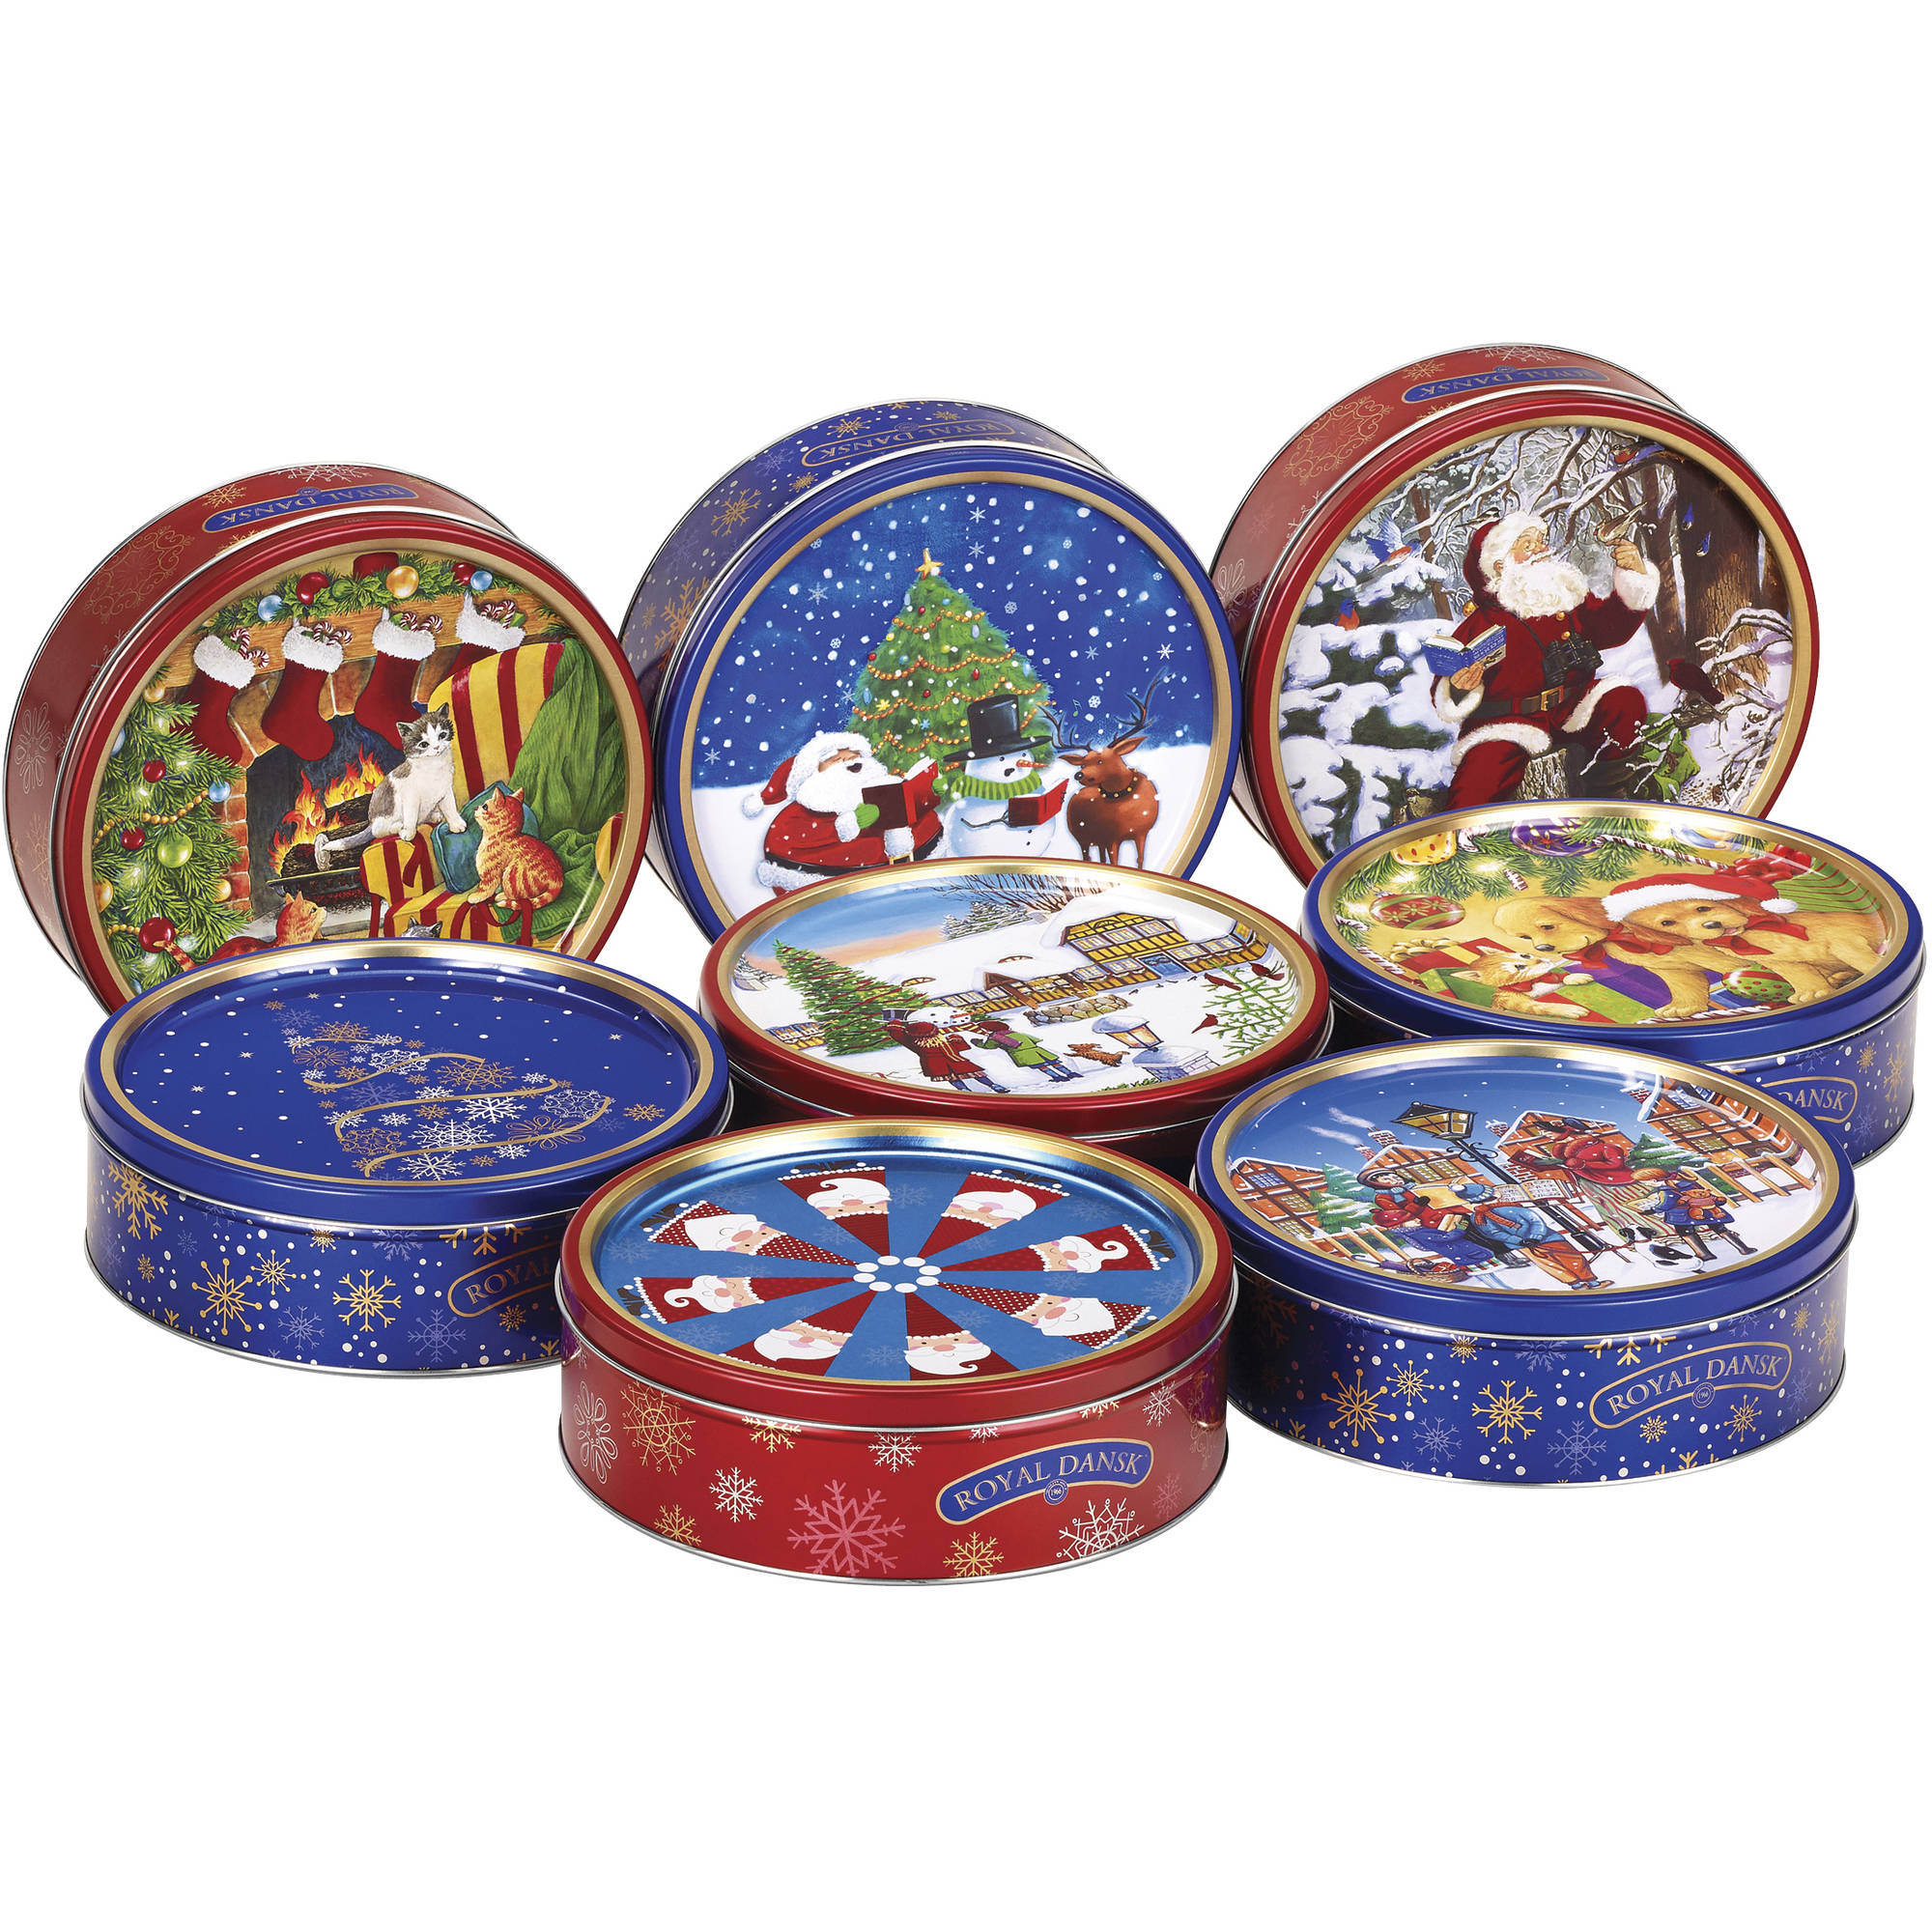 Royal Dansk Danish Butter Cookies Holiday Gift, 12 oz